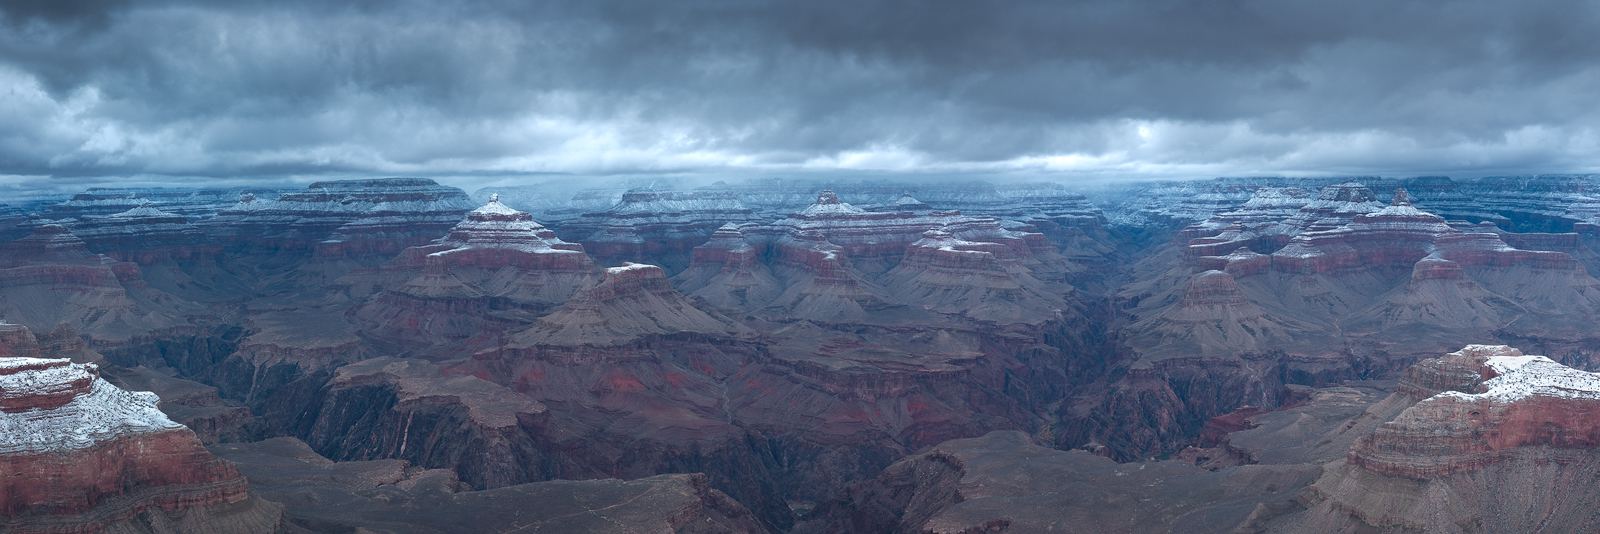 Panoramic, landscape, photography, Grand Canyon, Arizona, Winter, snow, storm, neige, hiver, panoramique, photo